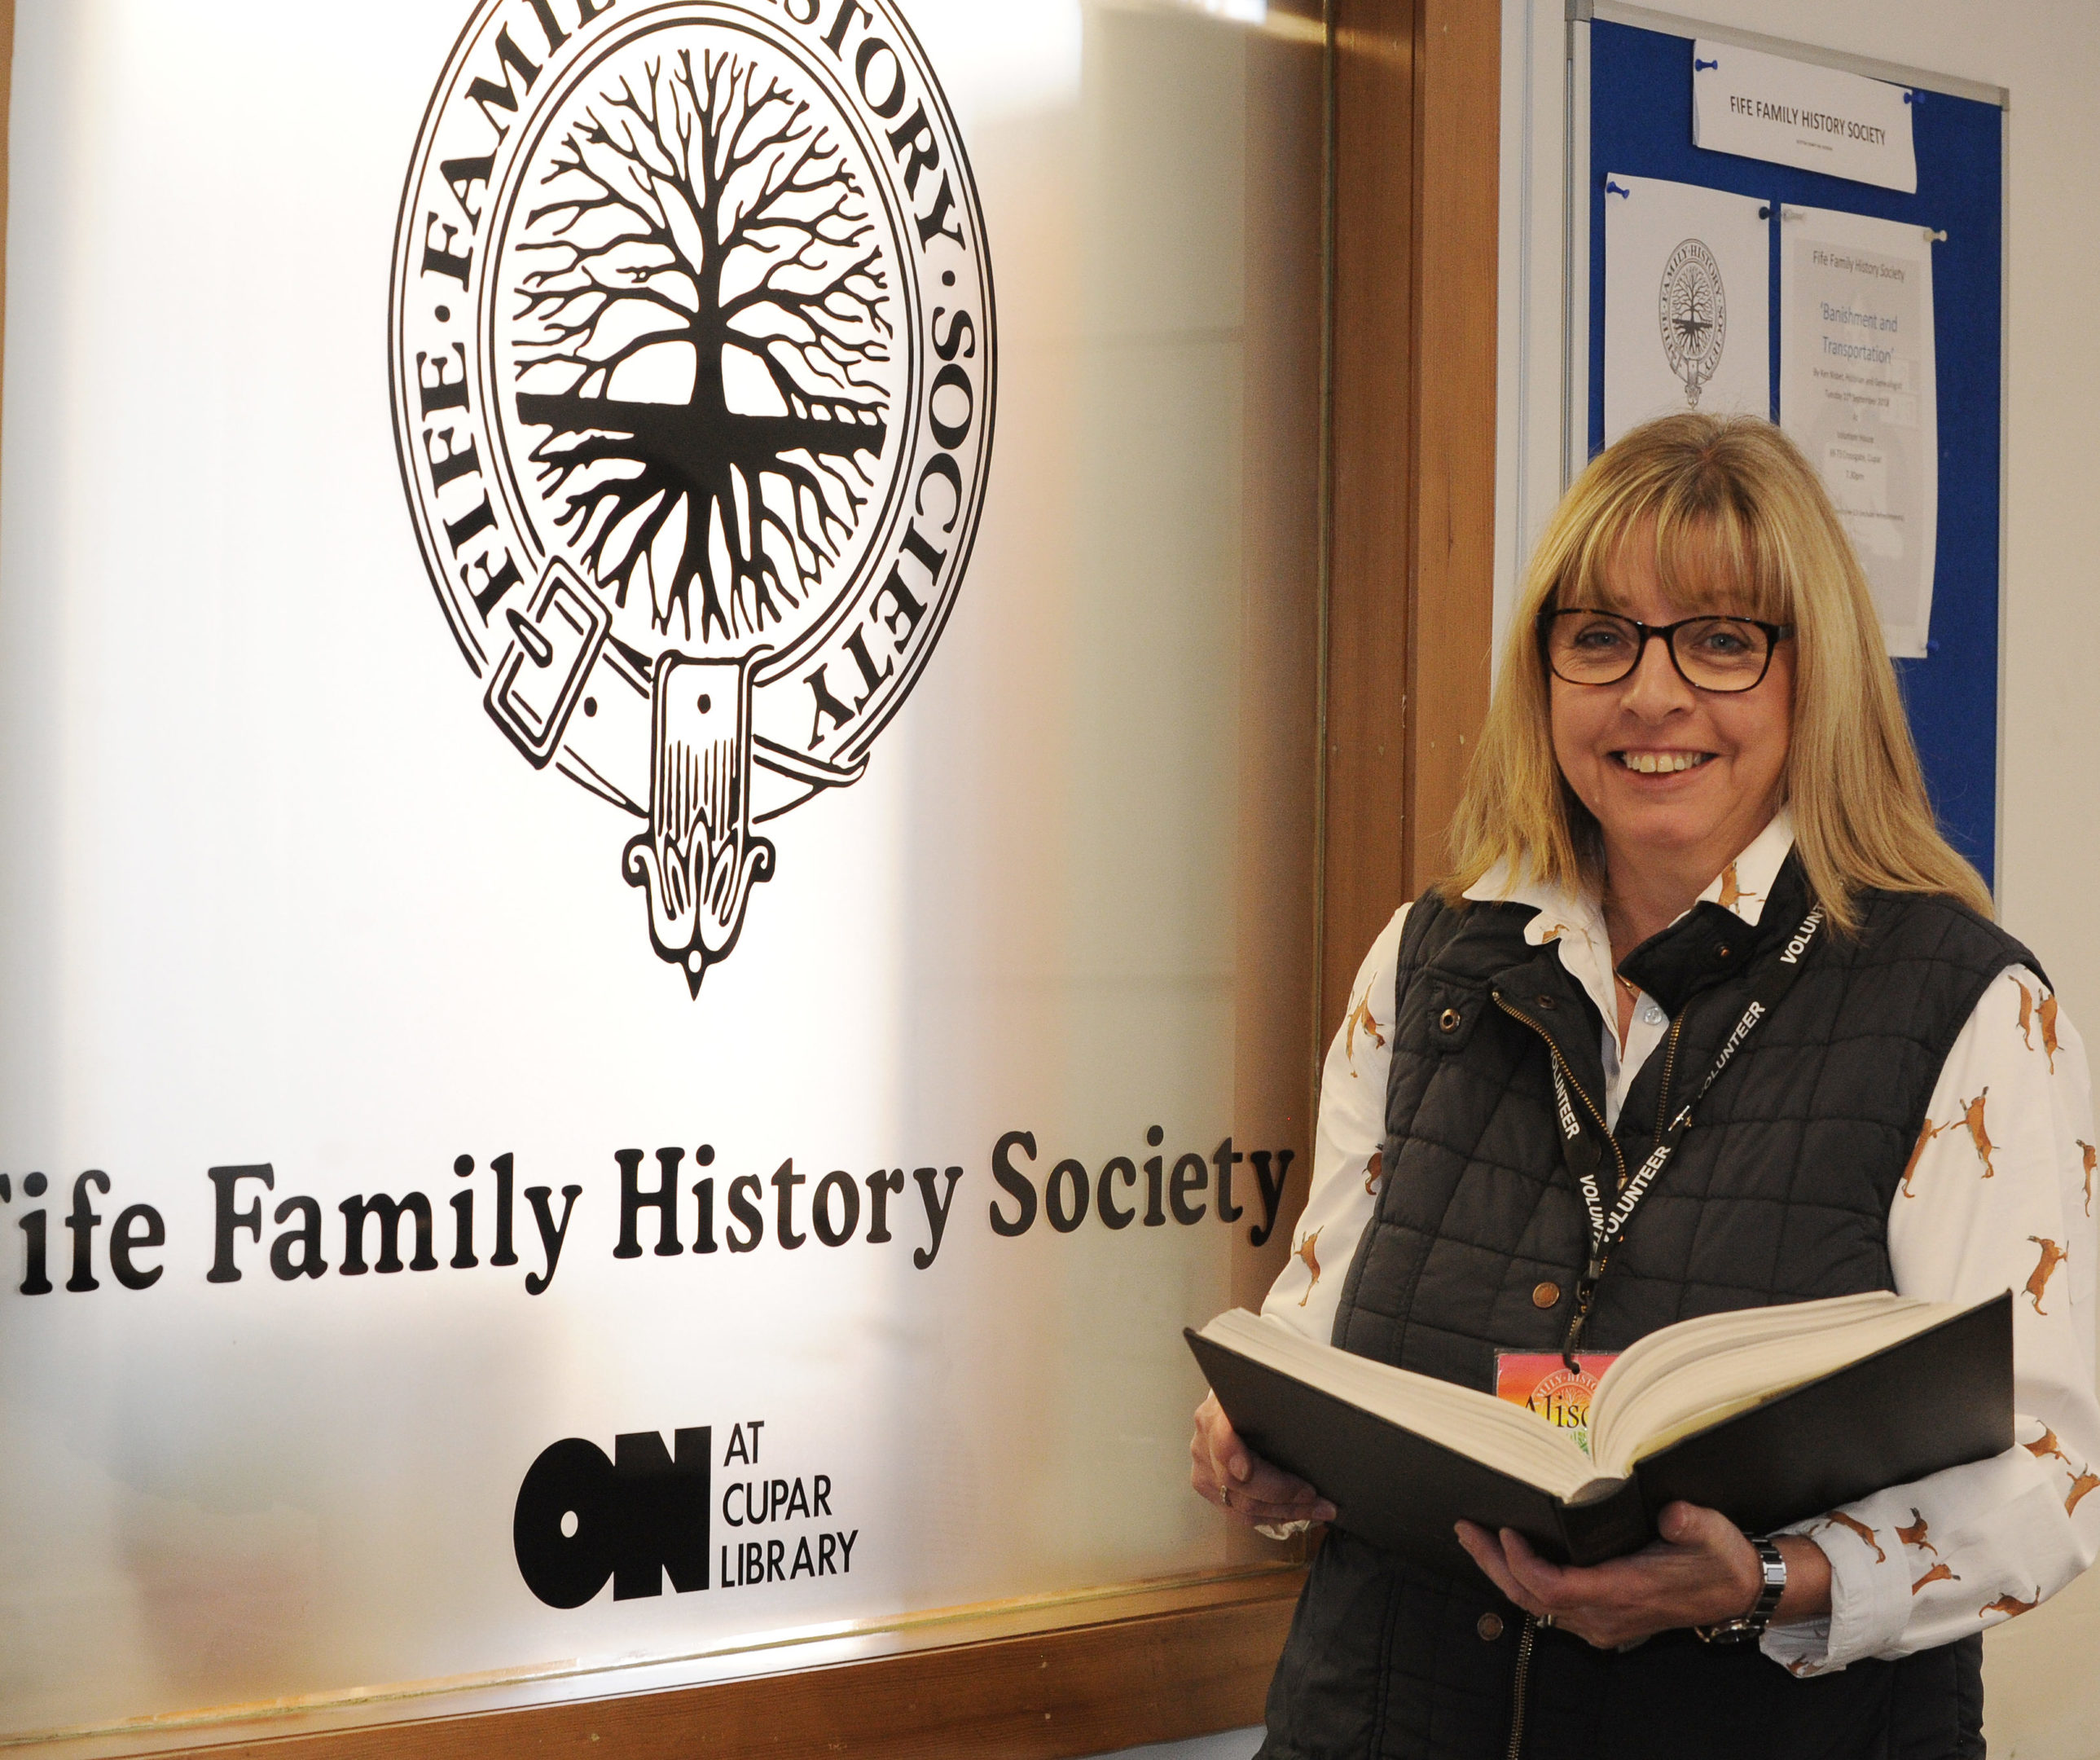 Fife Family History Society chairman Alison Murray and some of the resource material